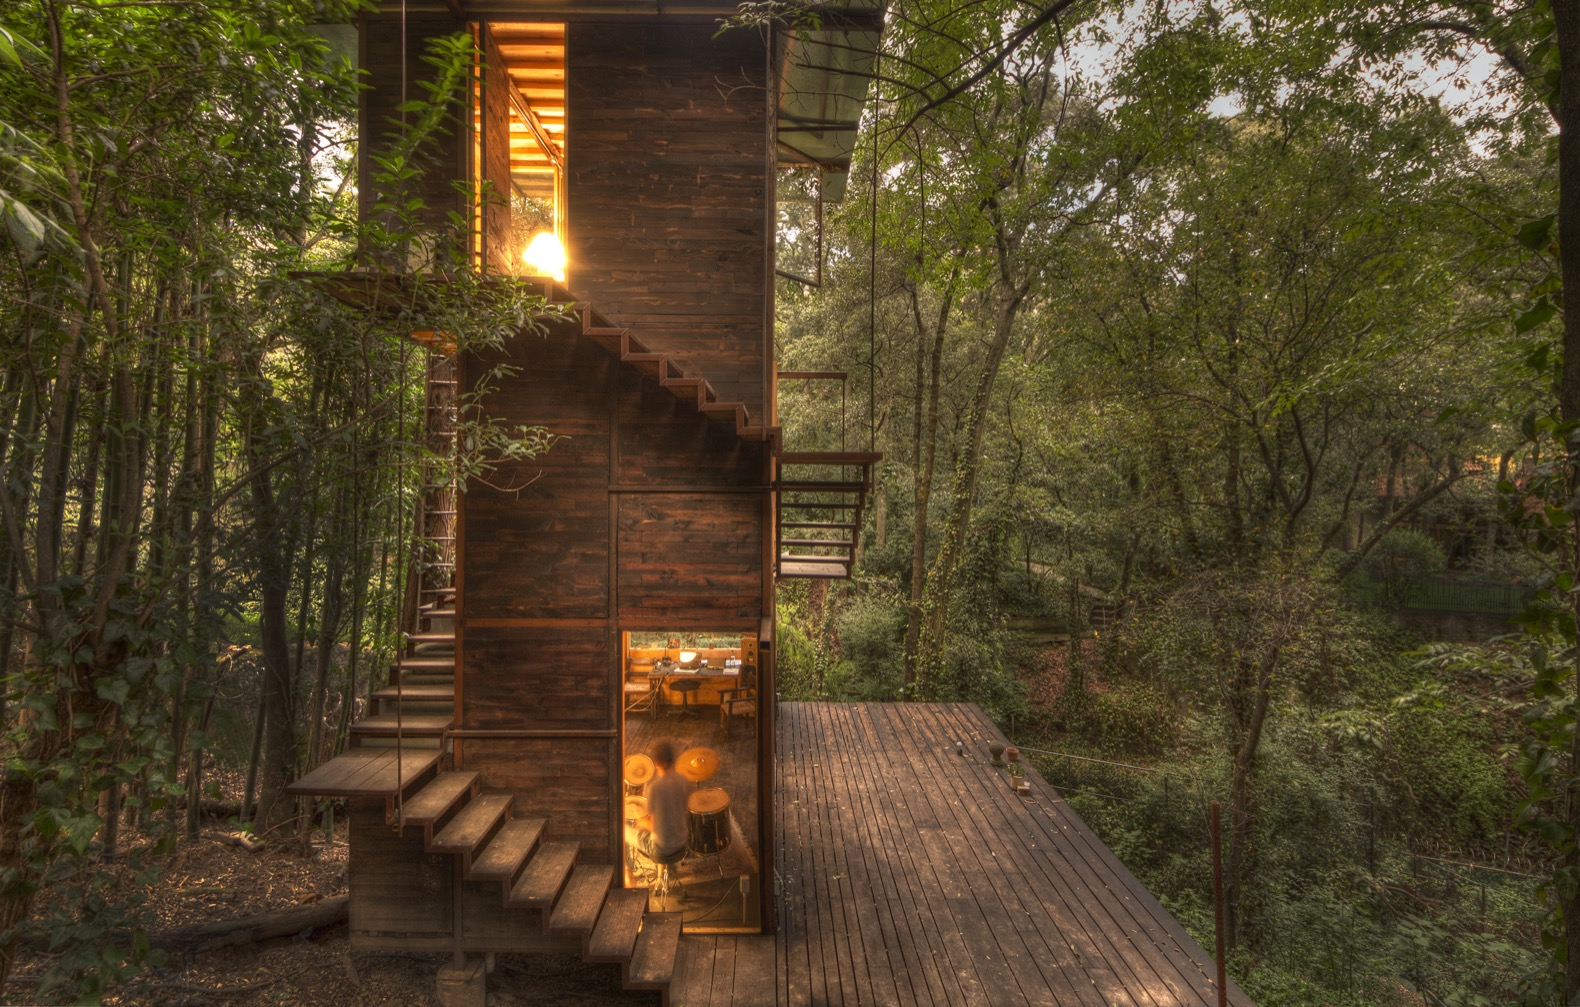 Floating treehouse inside Mexican forest is a dreamy escape from city noise